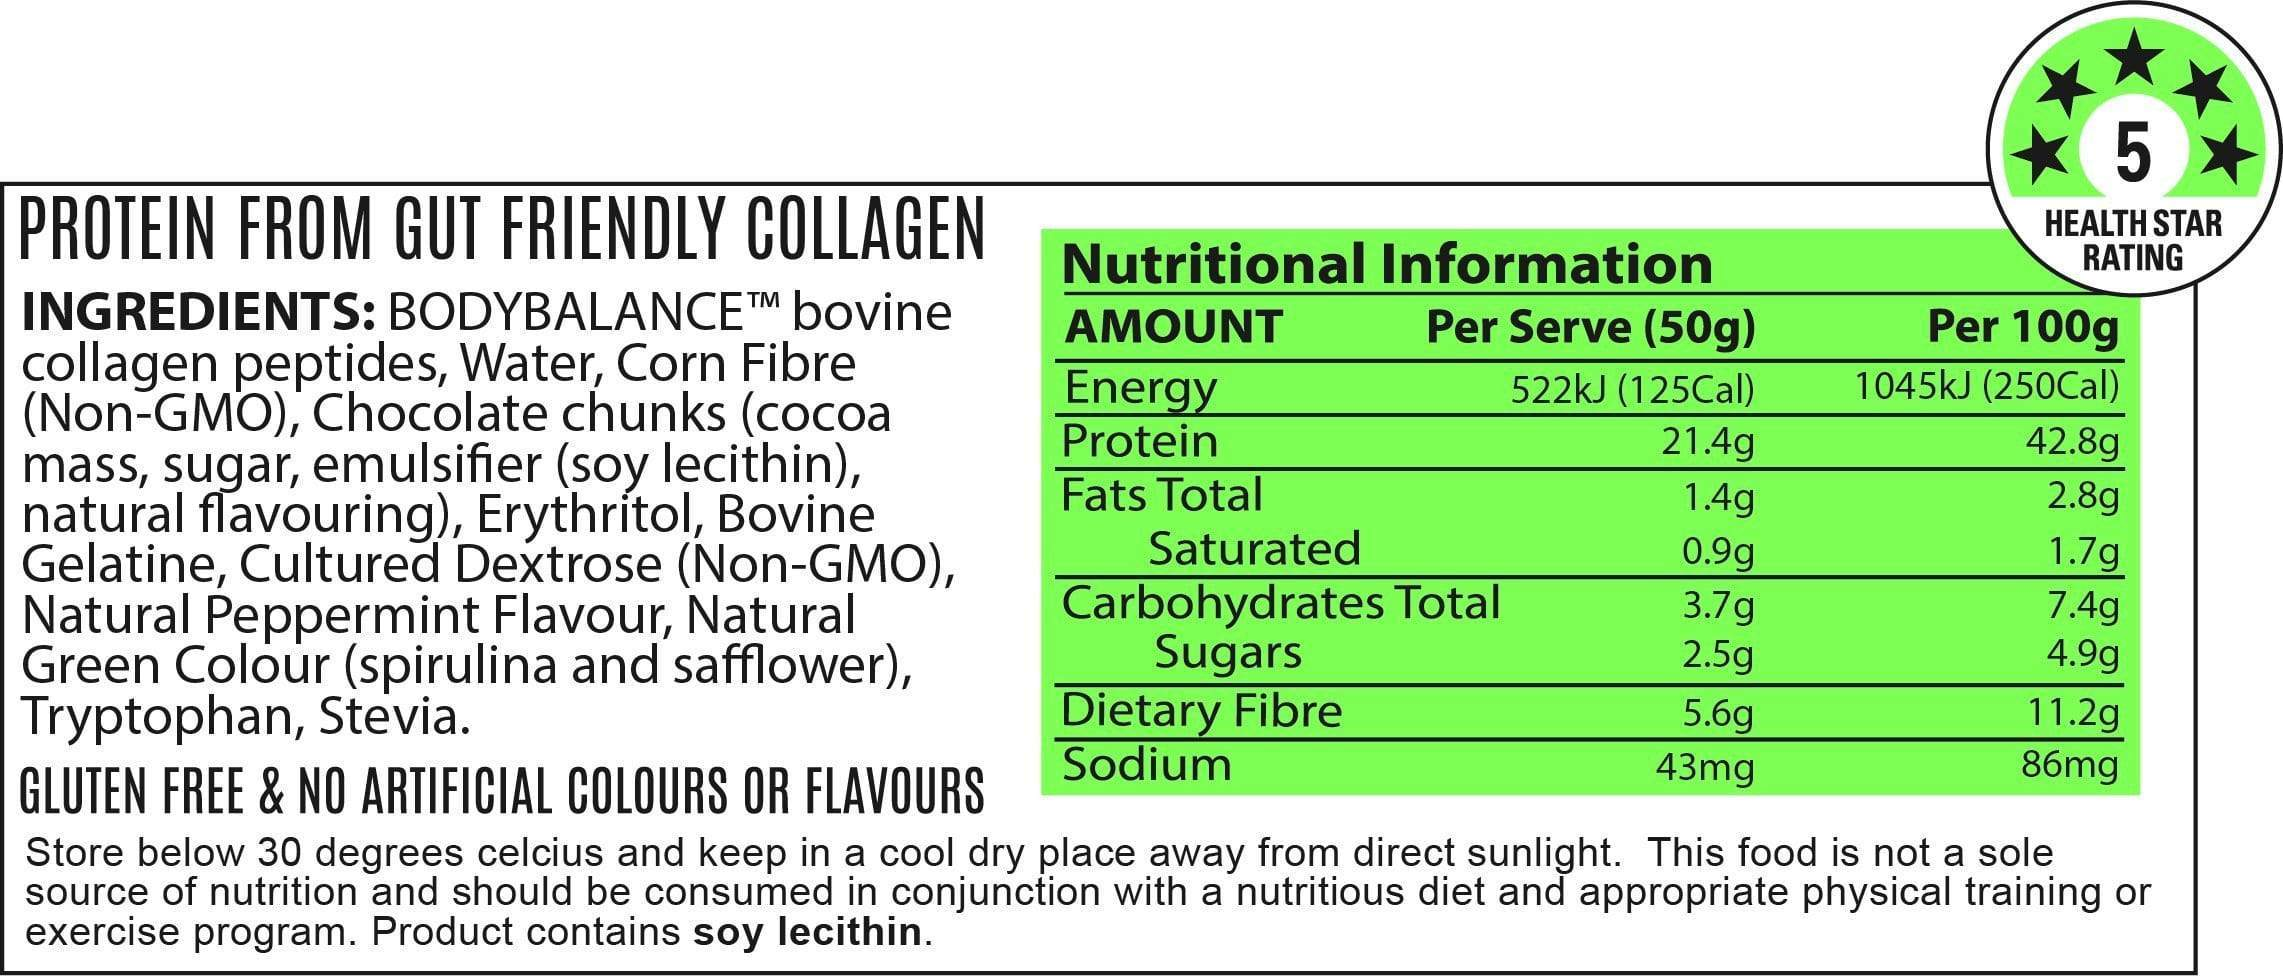 Nutrition Facts For ATP Noway Mallow Protein Bar 12 Box